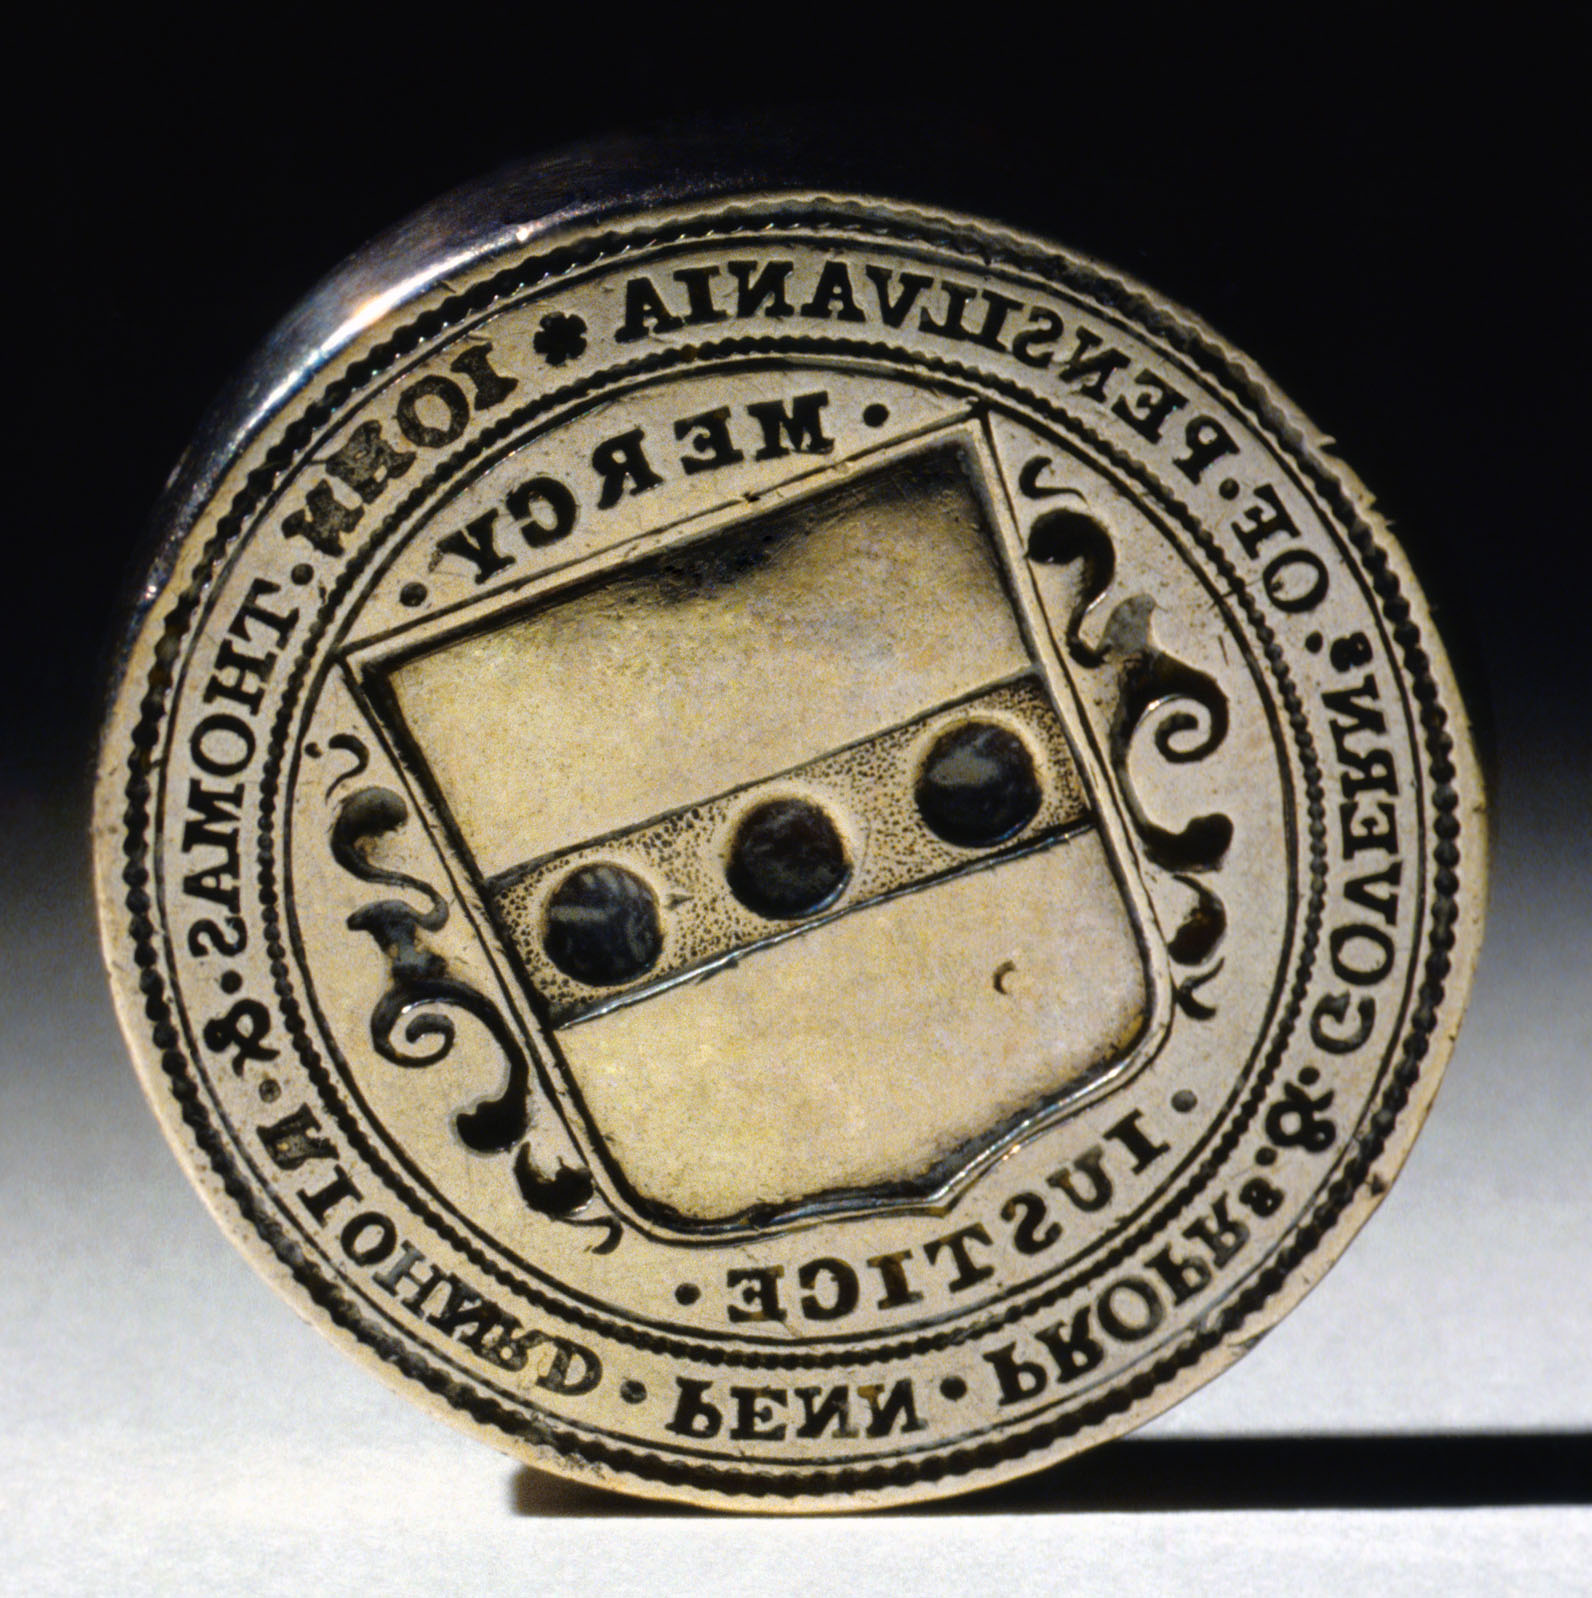 1955.0557 Seal, view 2